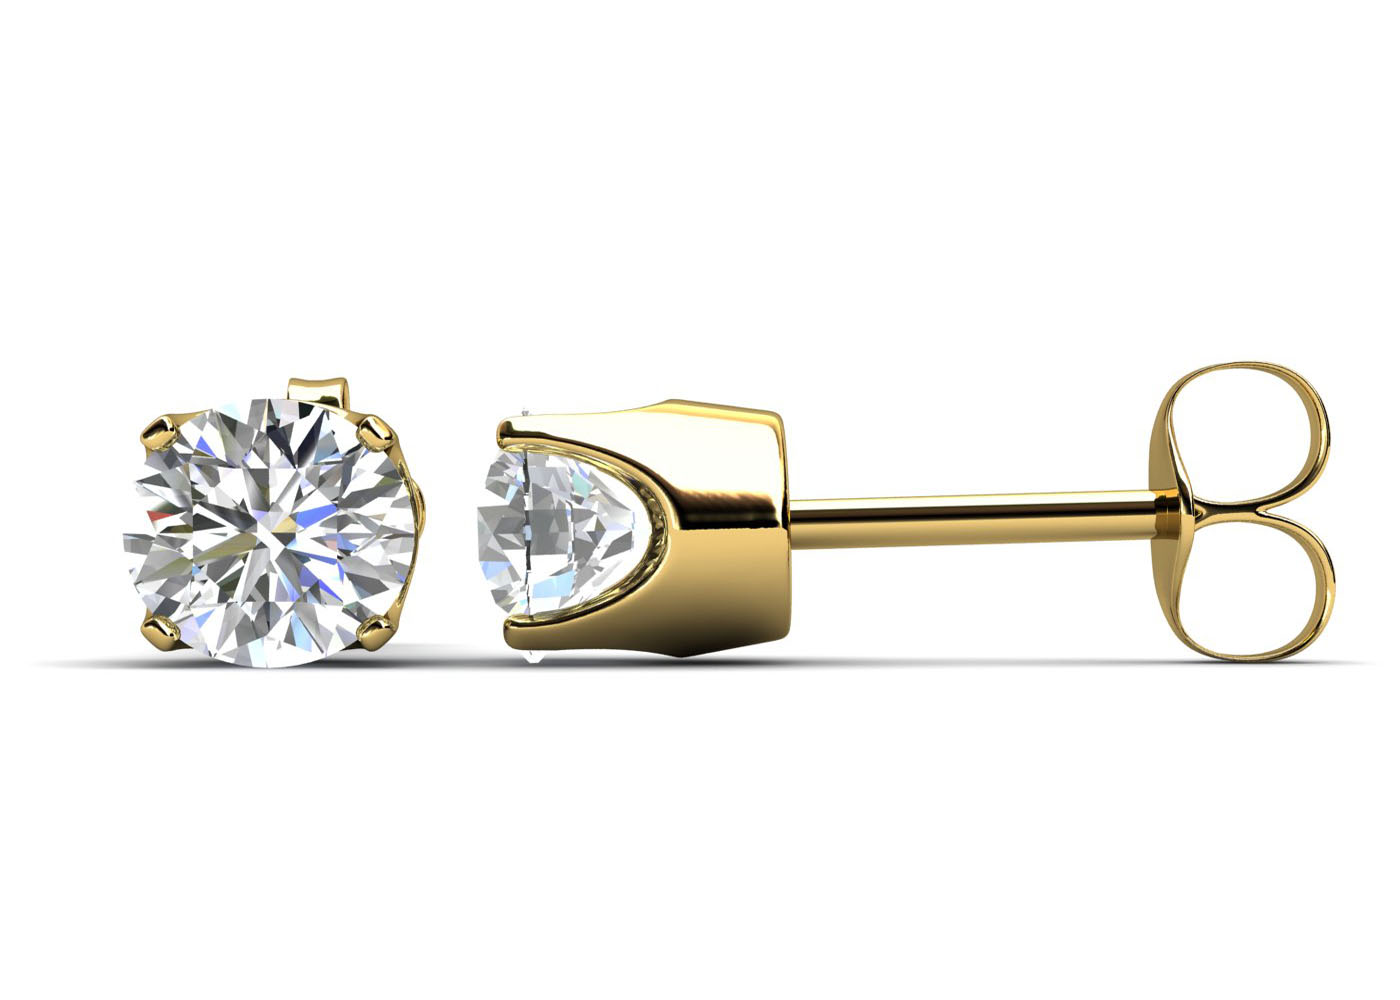 9ct Claw Set Diamond Earrings 0.15 Carats - Image 4 of 6